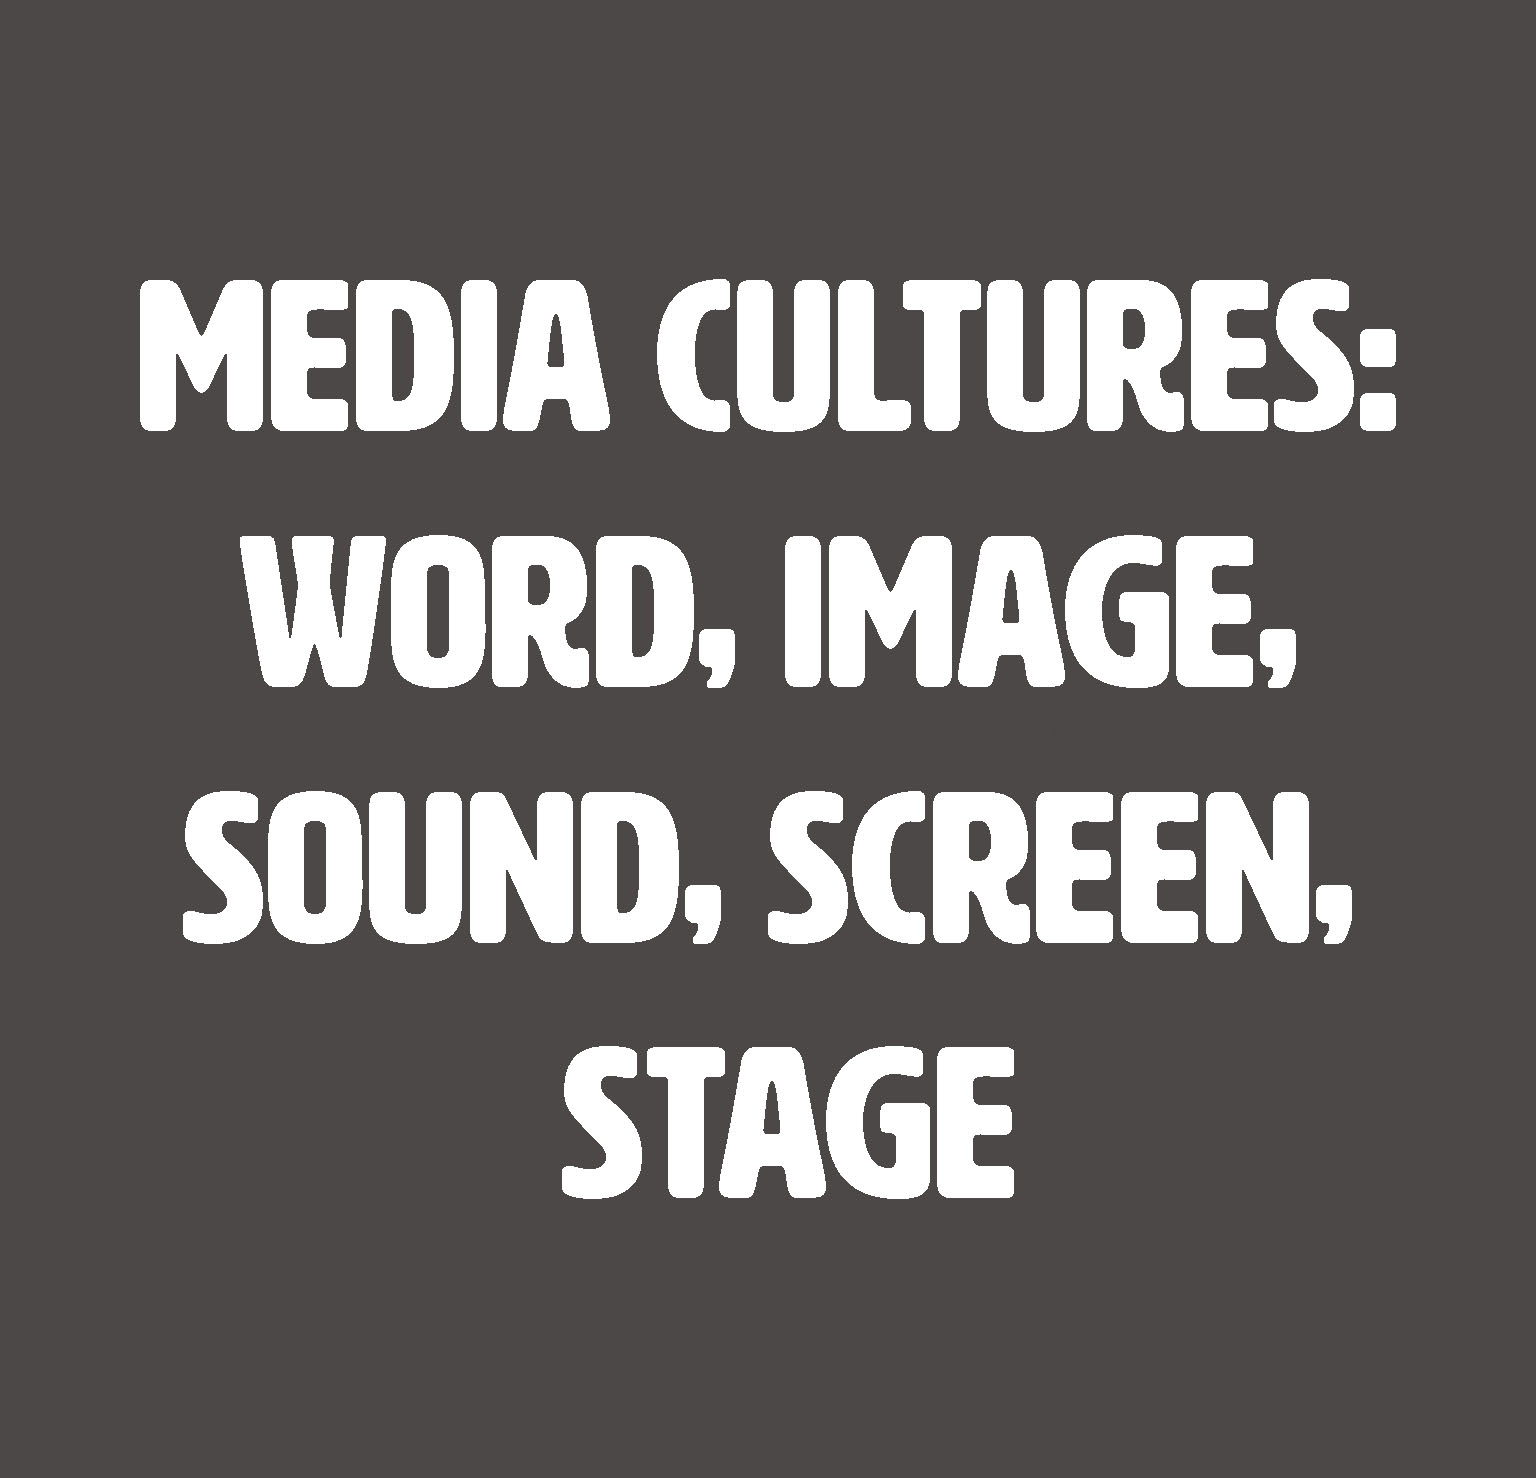 Word, Image, Sound, Screen, Stage